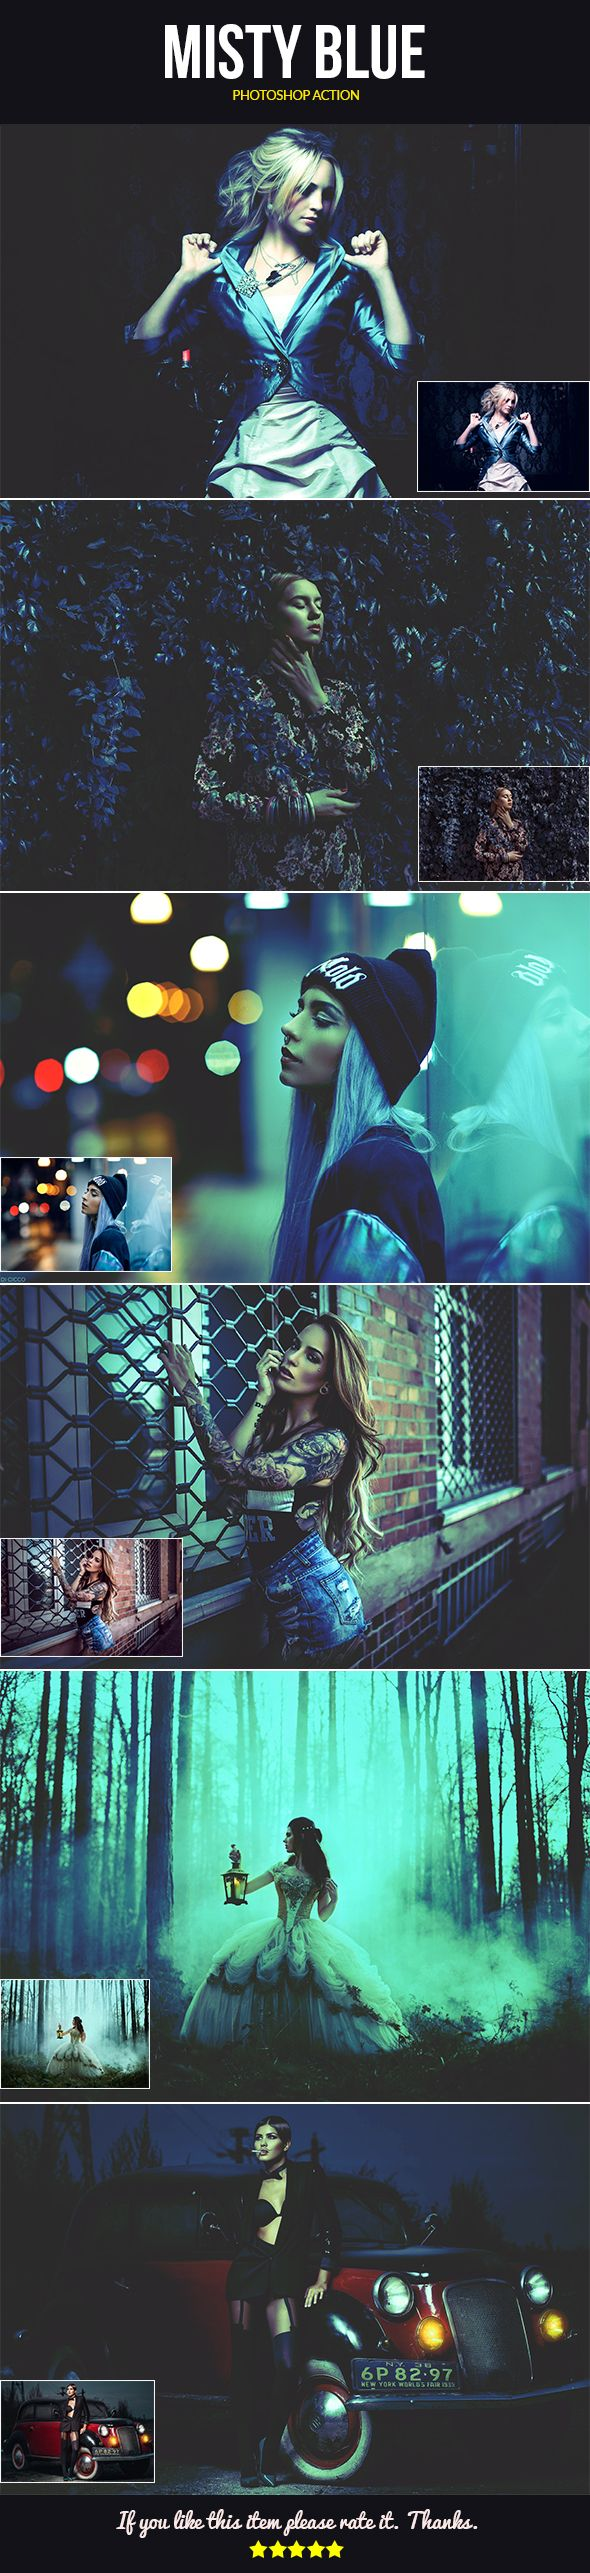 MISTY BLUE.... - Best Photoshop Actions for Designers & Photographers  Download:https://goo.gl/UKphMG